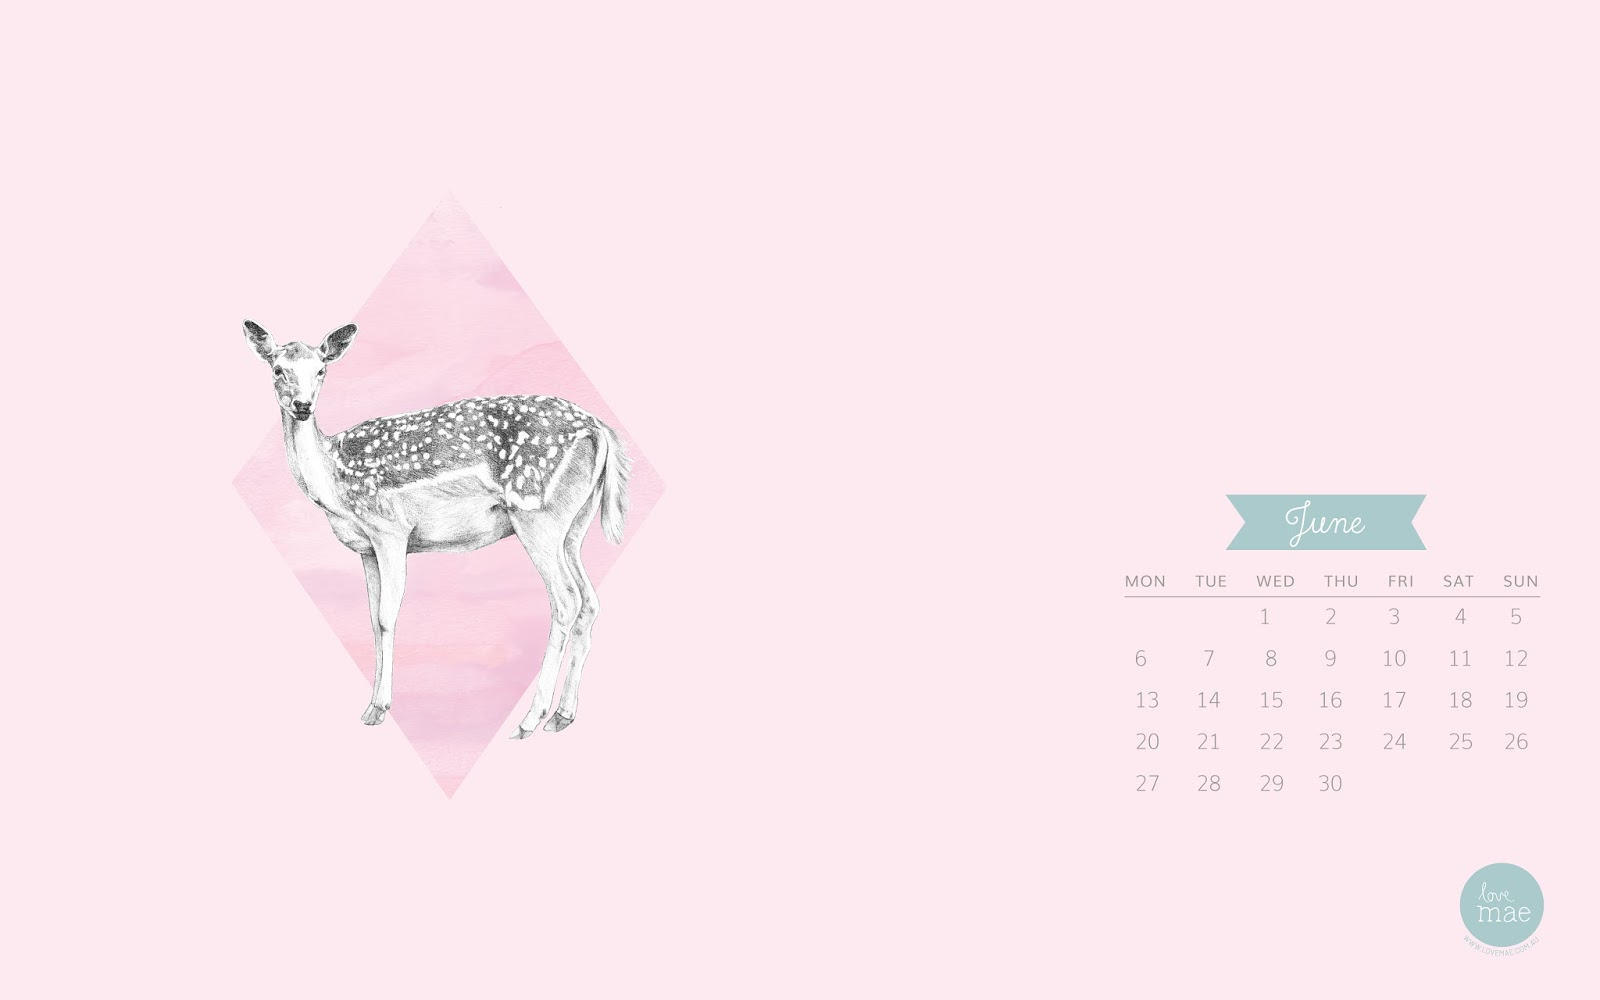 Calendar Wallpaper Love Mae : New desktop calendar for june love mae